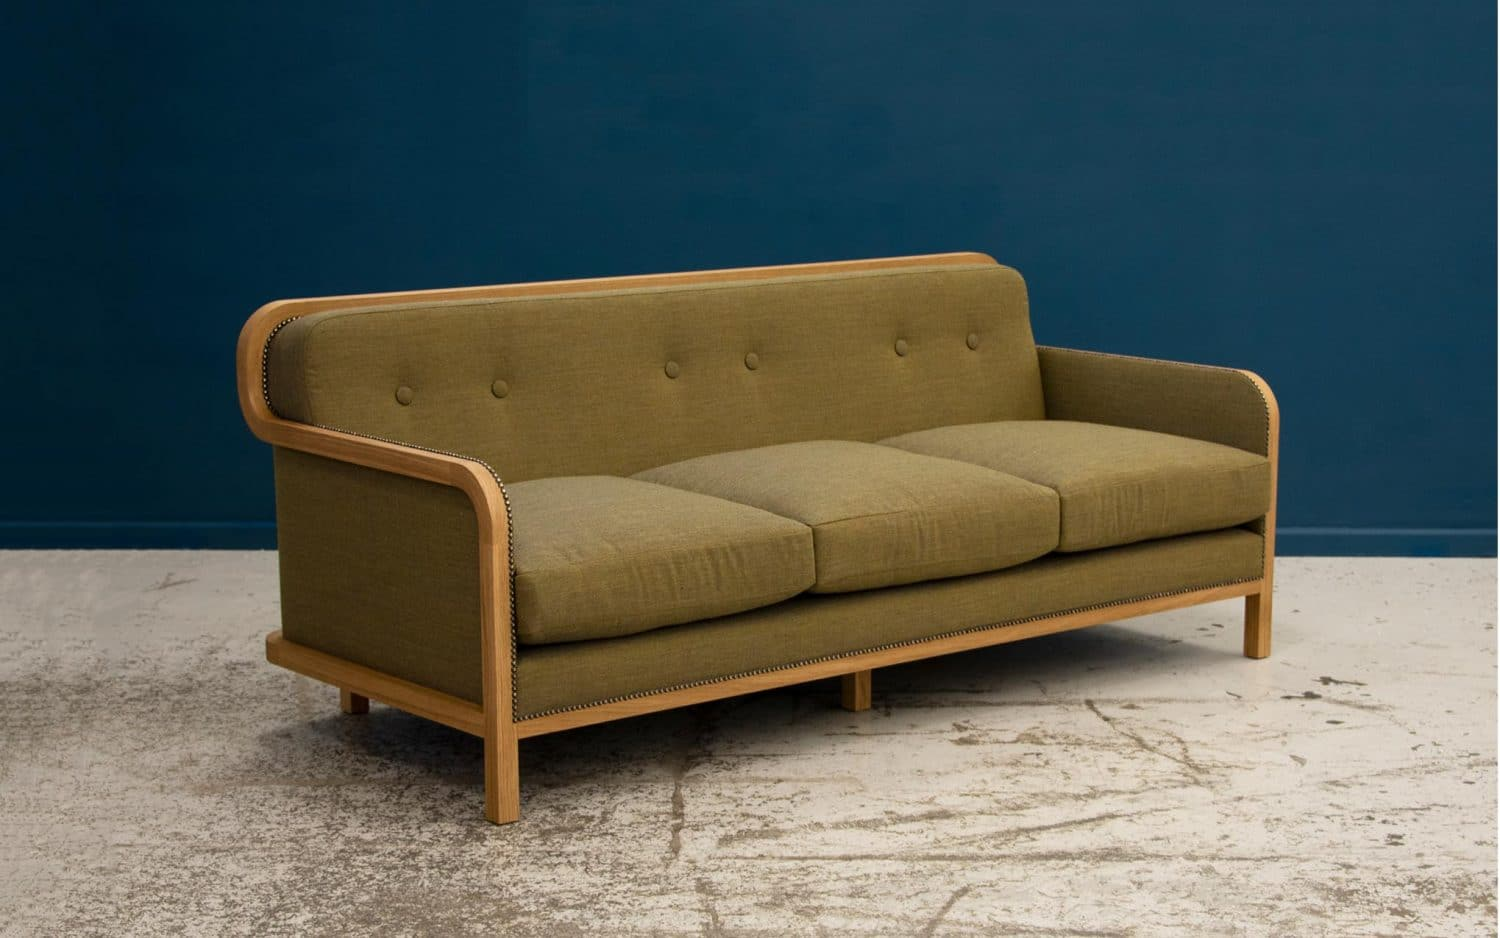 Piet Hein Eek's sofa 'Home' for SCP, shown here in Kvadrat Canvas fabric.